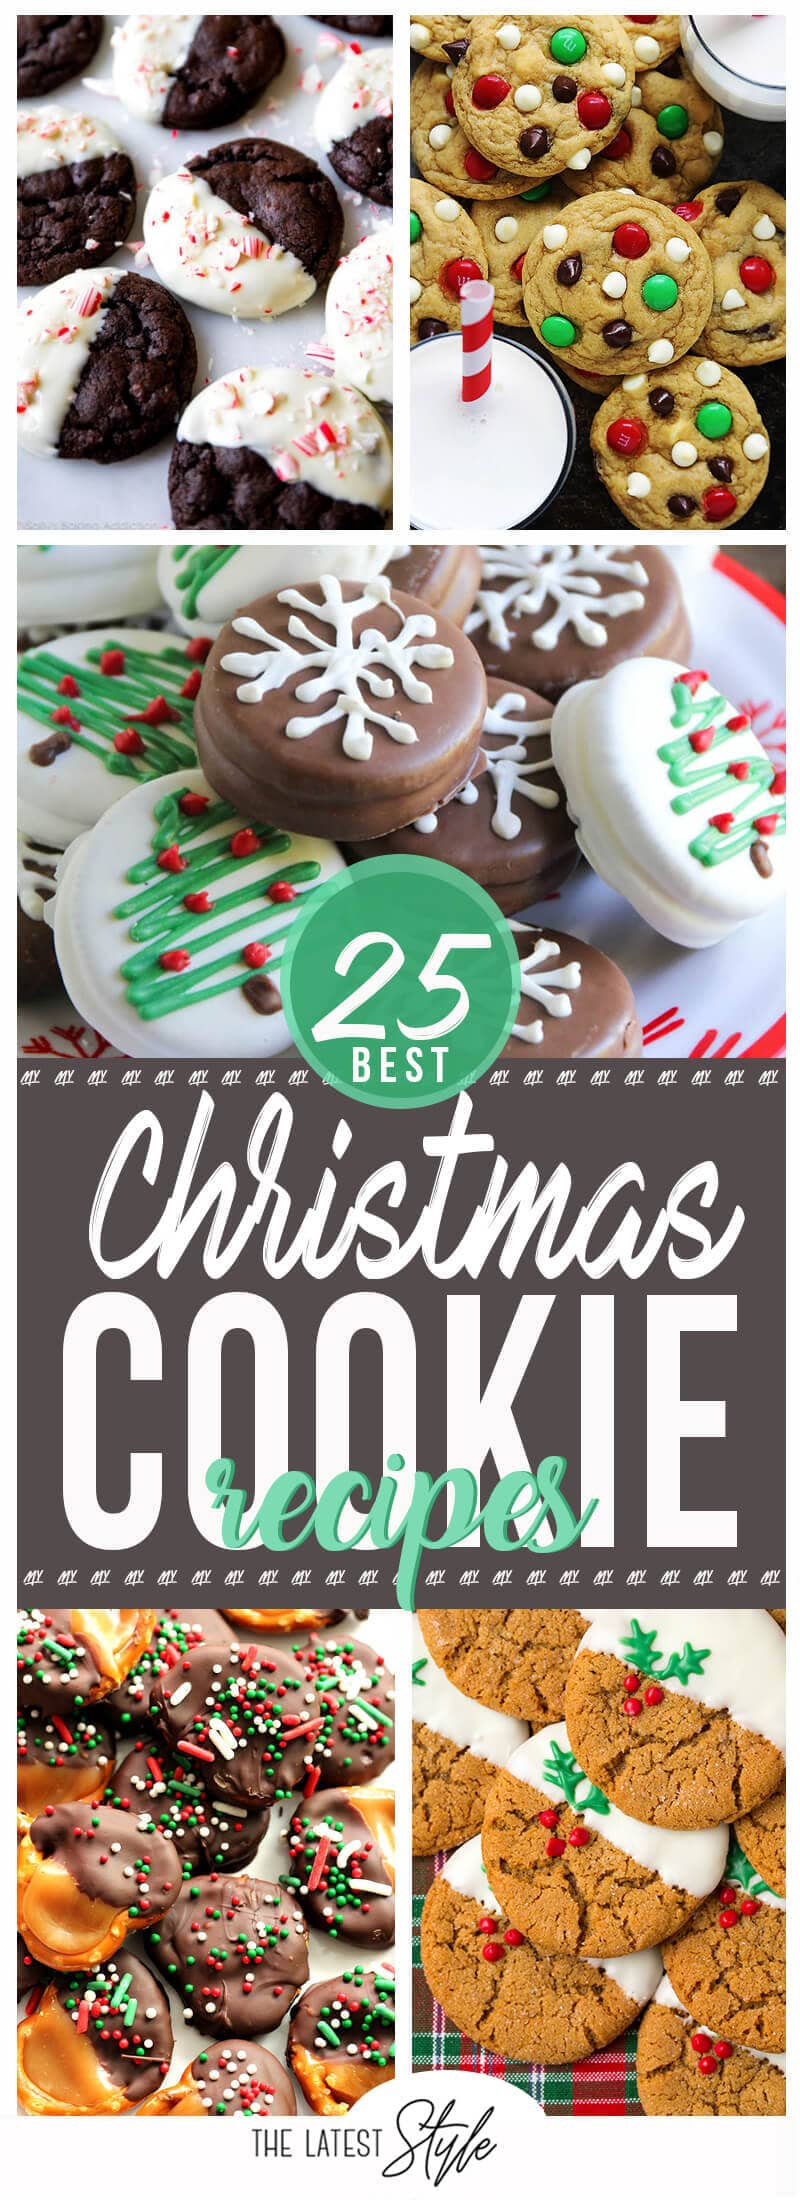 25 Christmas Cookie Recipes Guaranteed to Delight